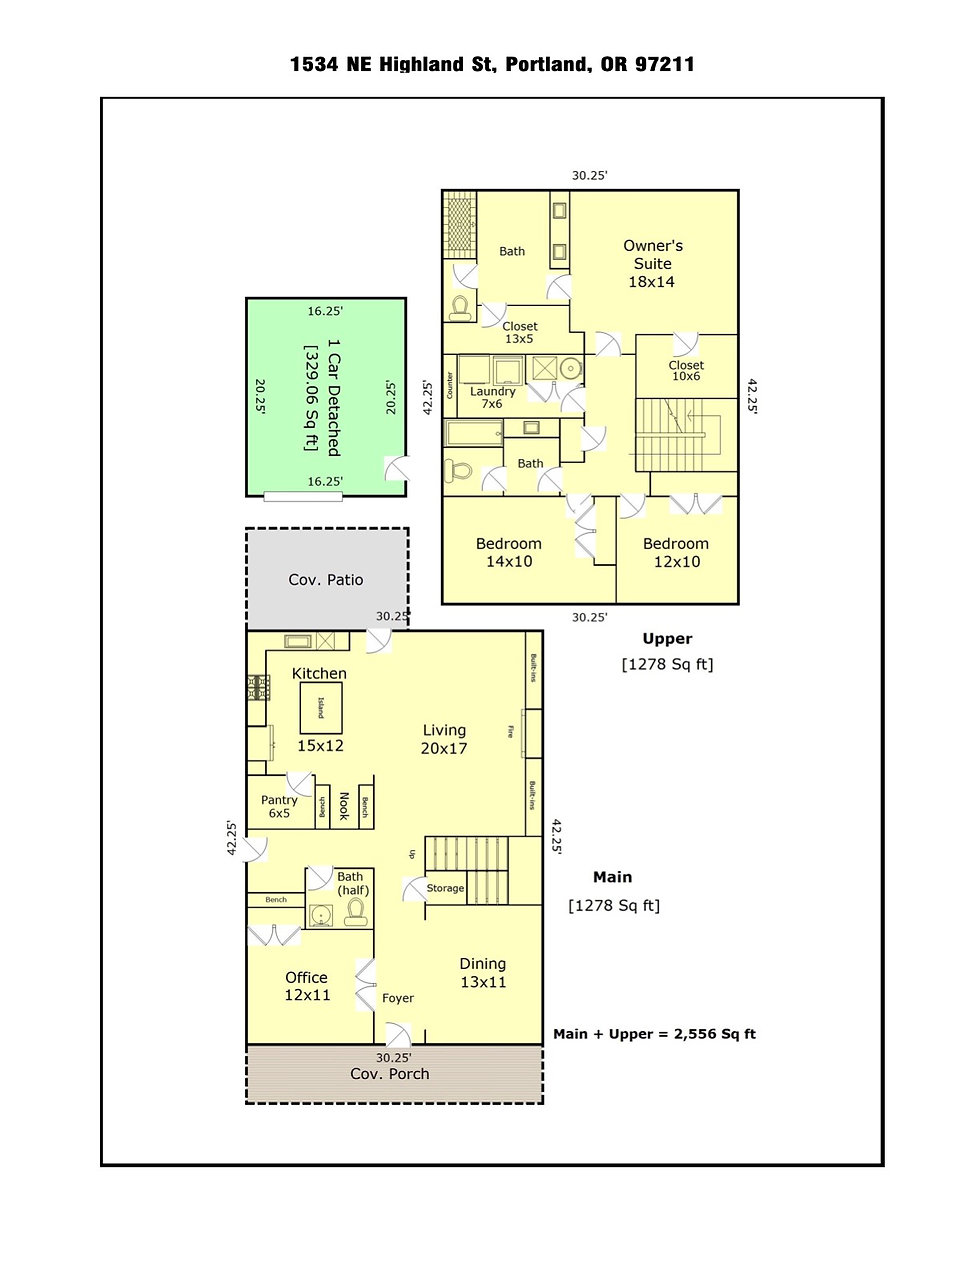 1534 NE Highland St Floorplan.jpg